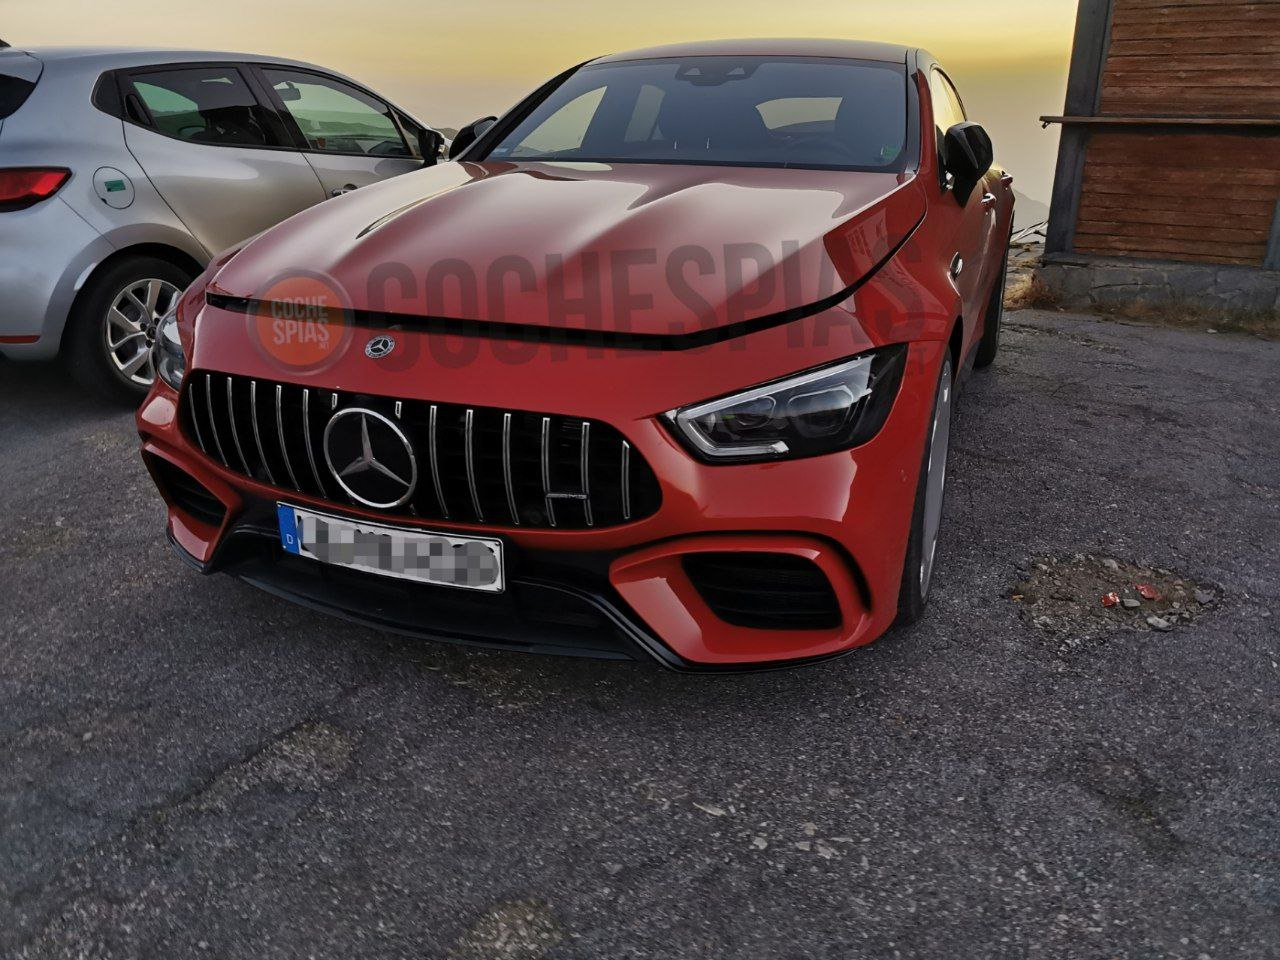 2017 - [Mercedes-AMG] GT4 - Page 7 Photo523